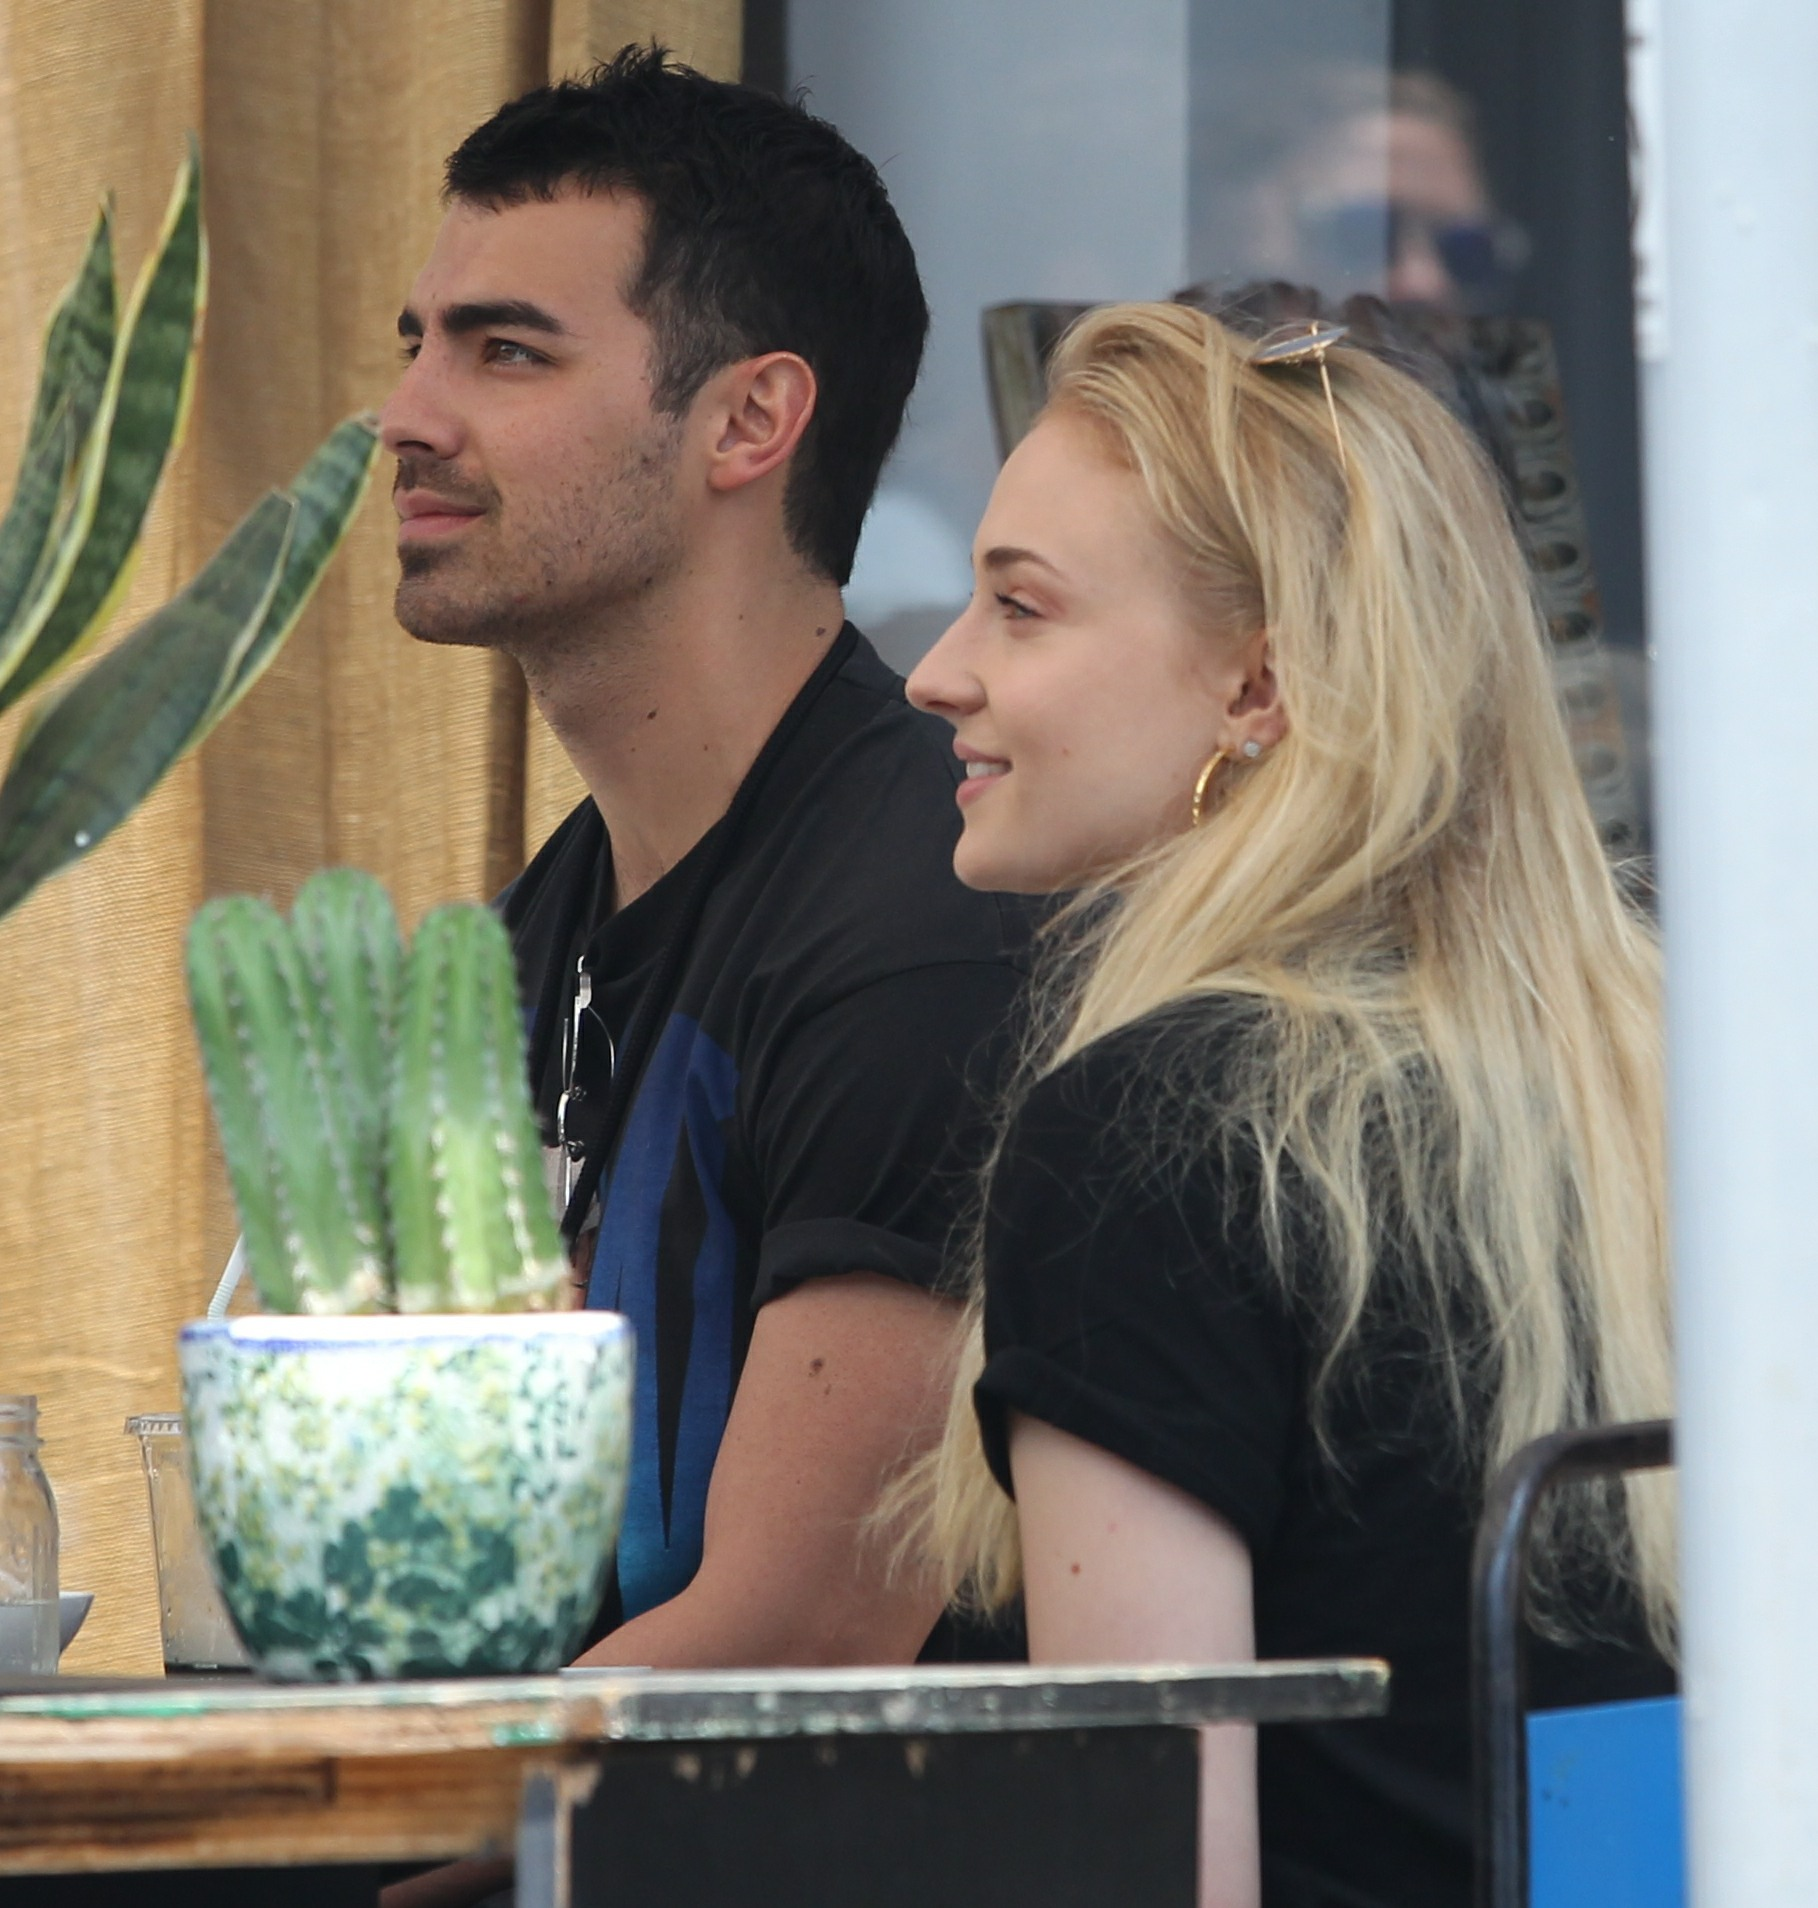 Joe Jonas & Sophie Turner are engaged, he proposed with a pear-shaped diamond